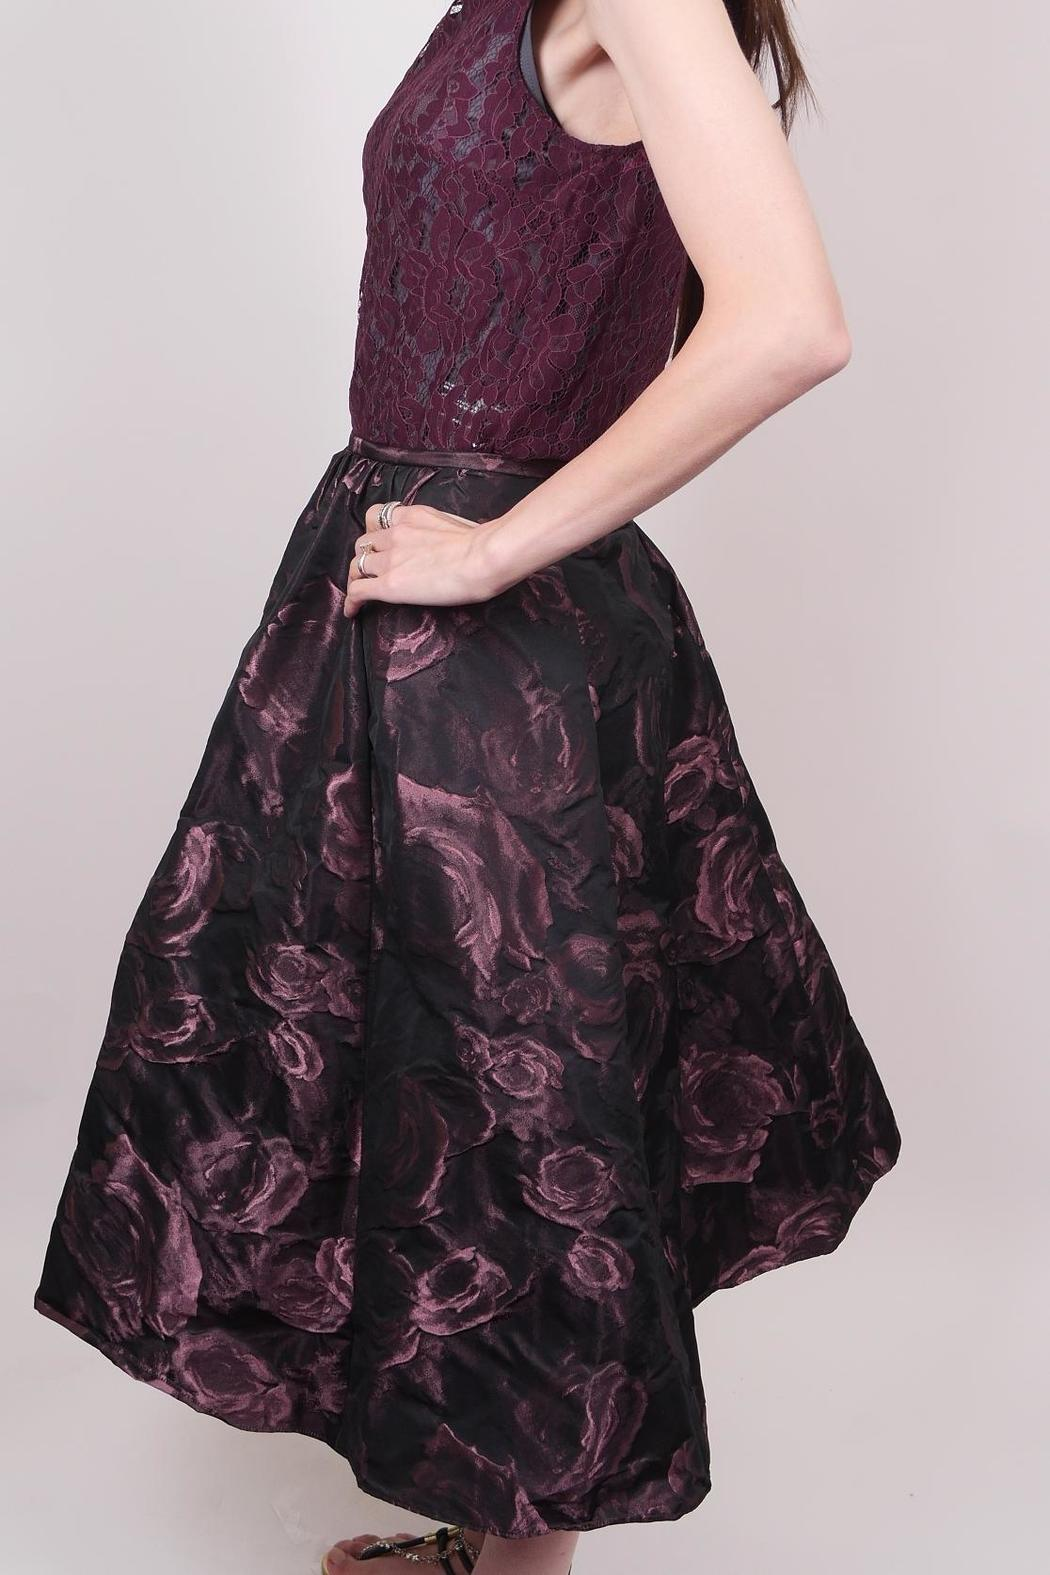 Tracy Reese Dolce Vita Skirt - Side Cropped Image